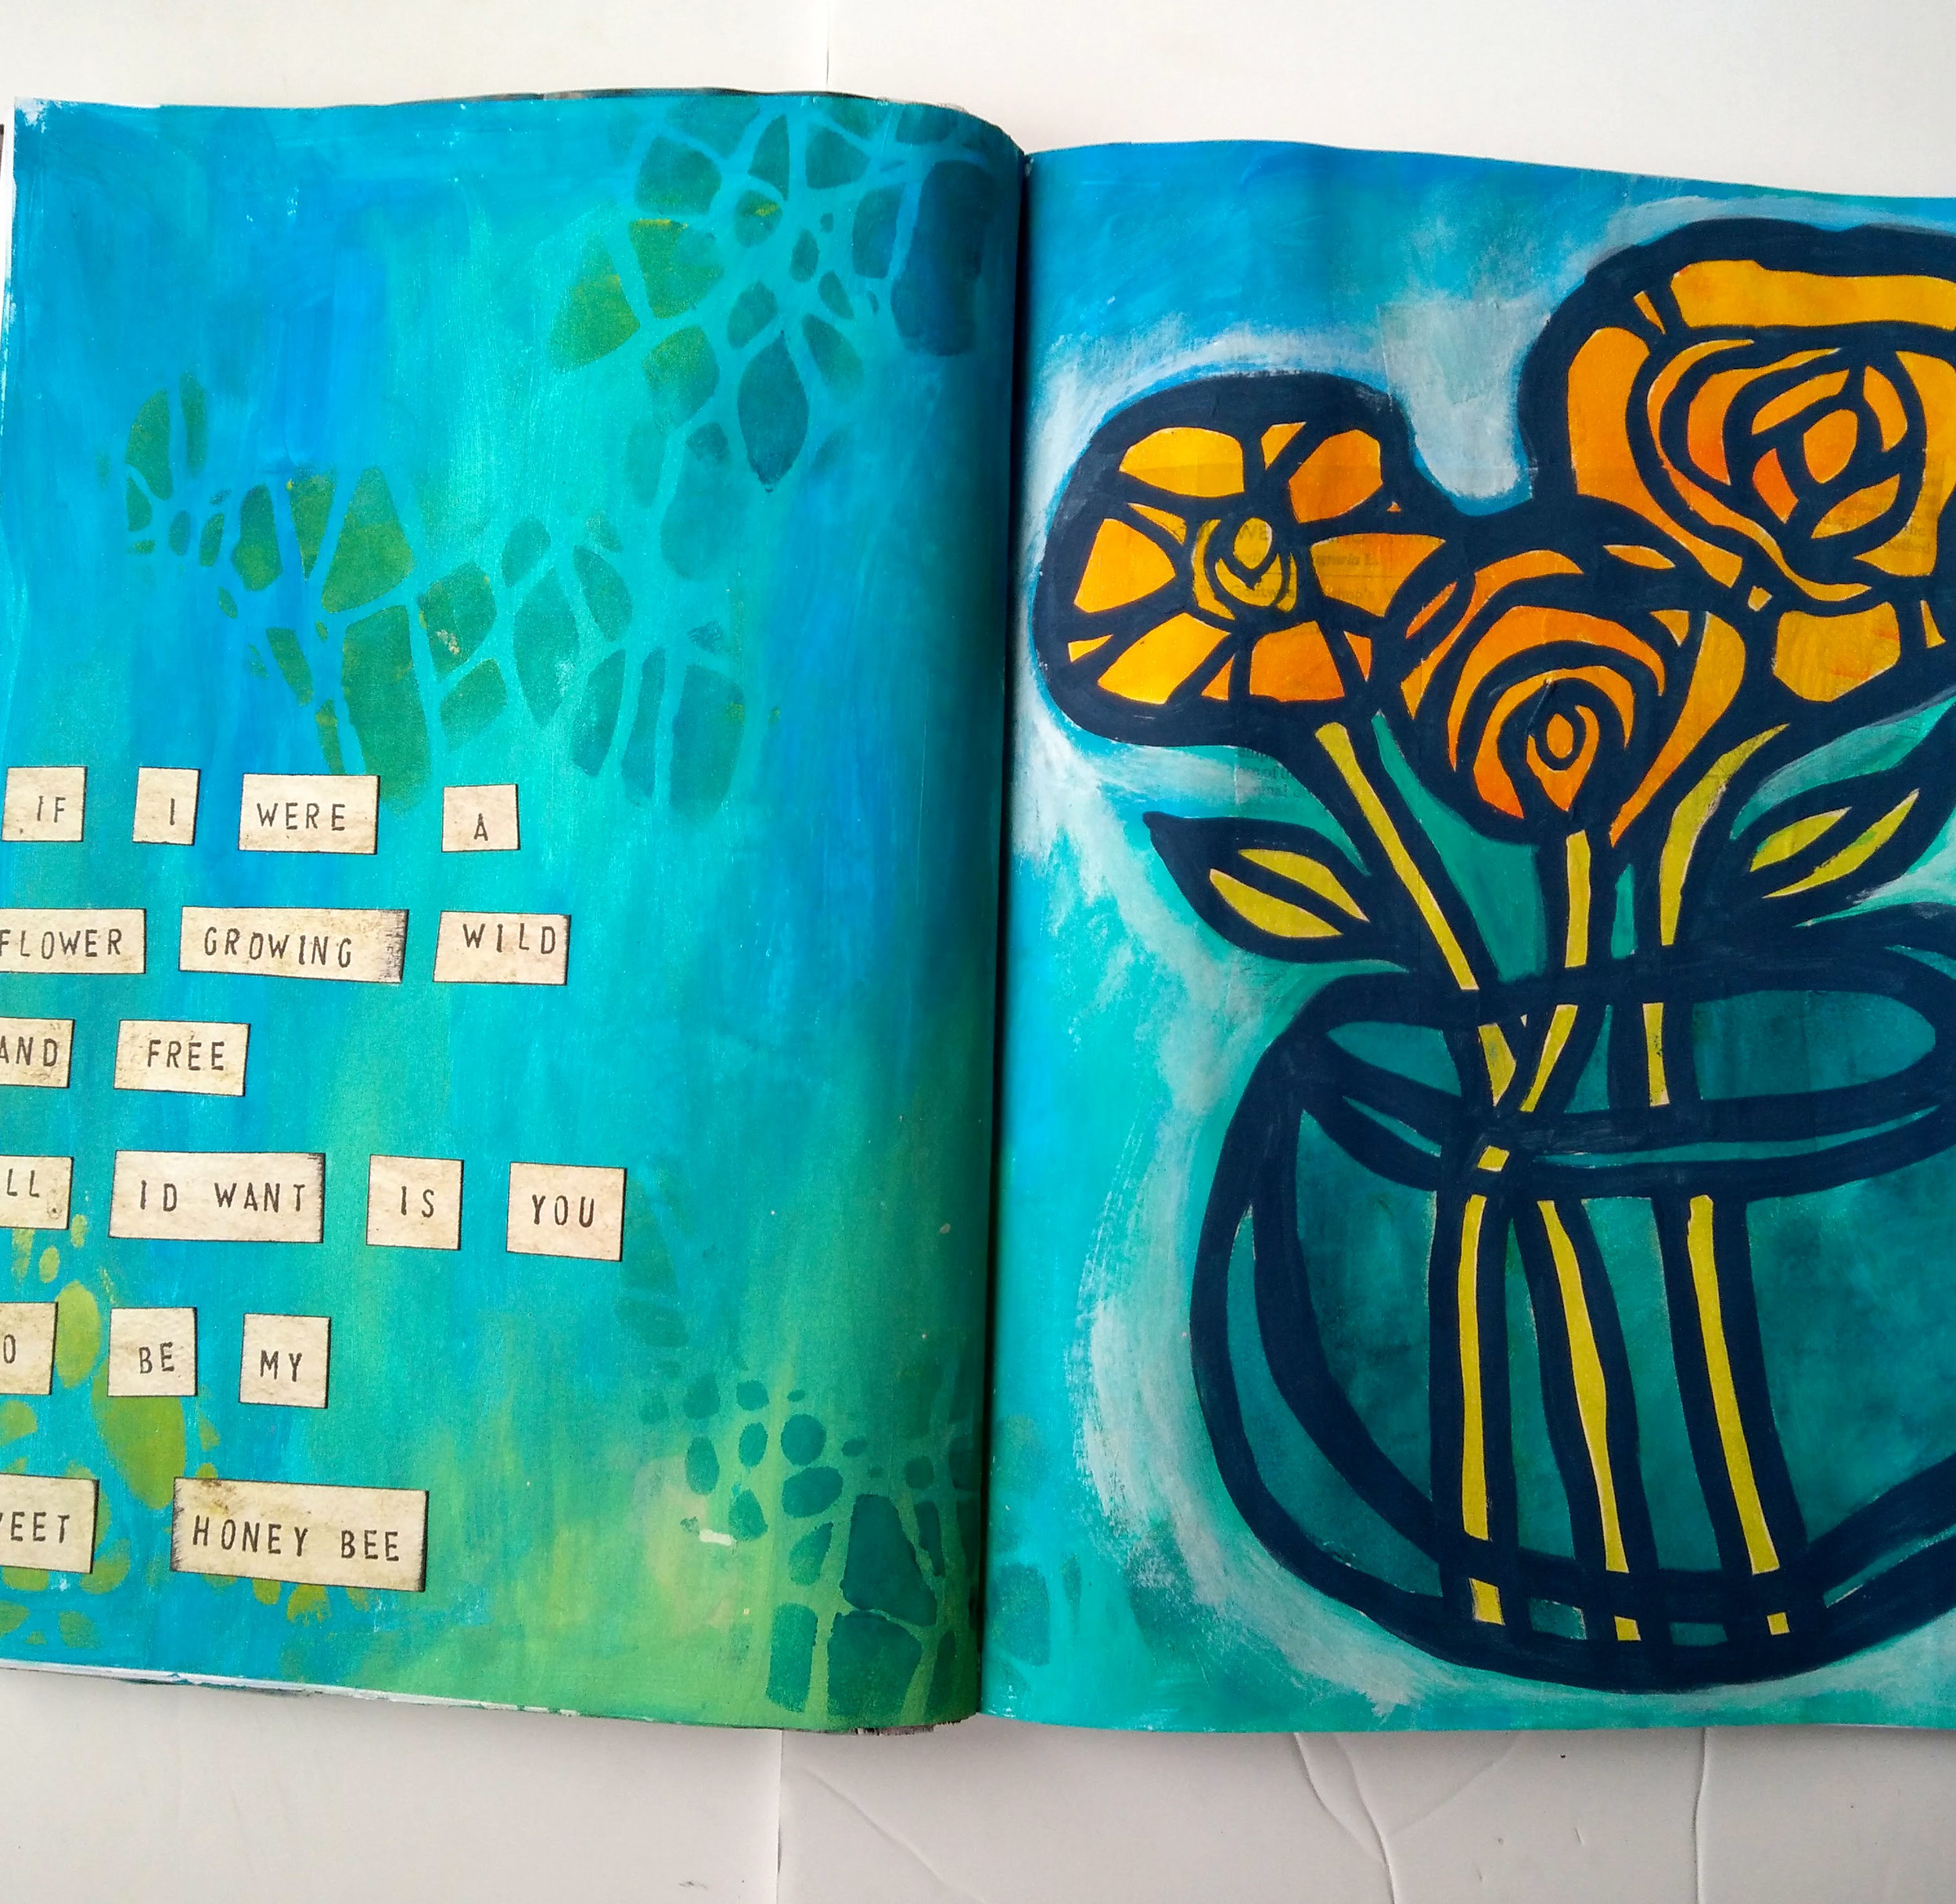 A mixed media Art Journal Page - Wild and Free is an Art Journal Spread made using Stencilgirl Stencils. I'm sharing a journal spread from the archives today with you. This page was made last year but I am still completely in love with this stencil from Suzi Dennis! Art Journal Ideas using lyrics are one of my favorite things to make! @karengaunt #mixedmedia #artjournal #artjournalideas #journalpages #mixedmediaideas